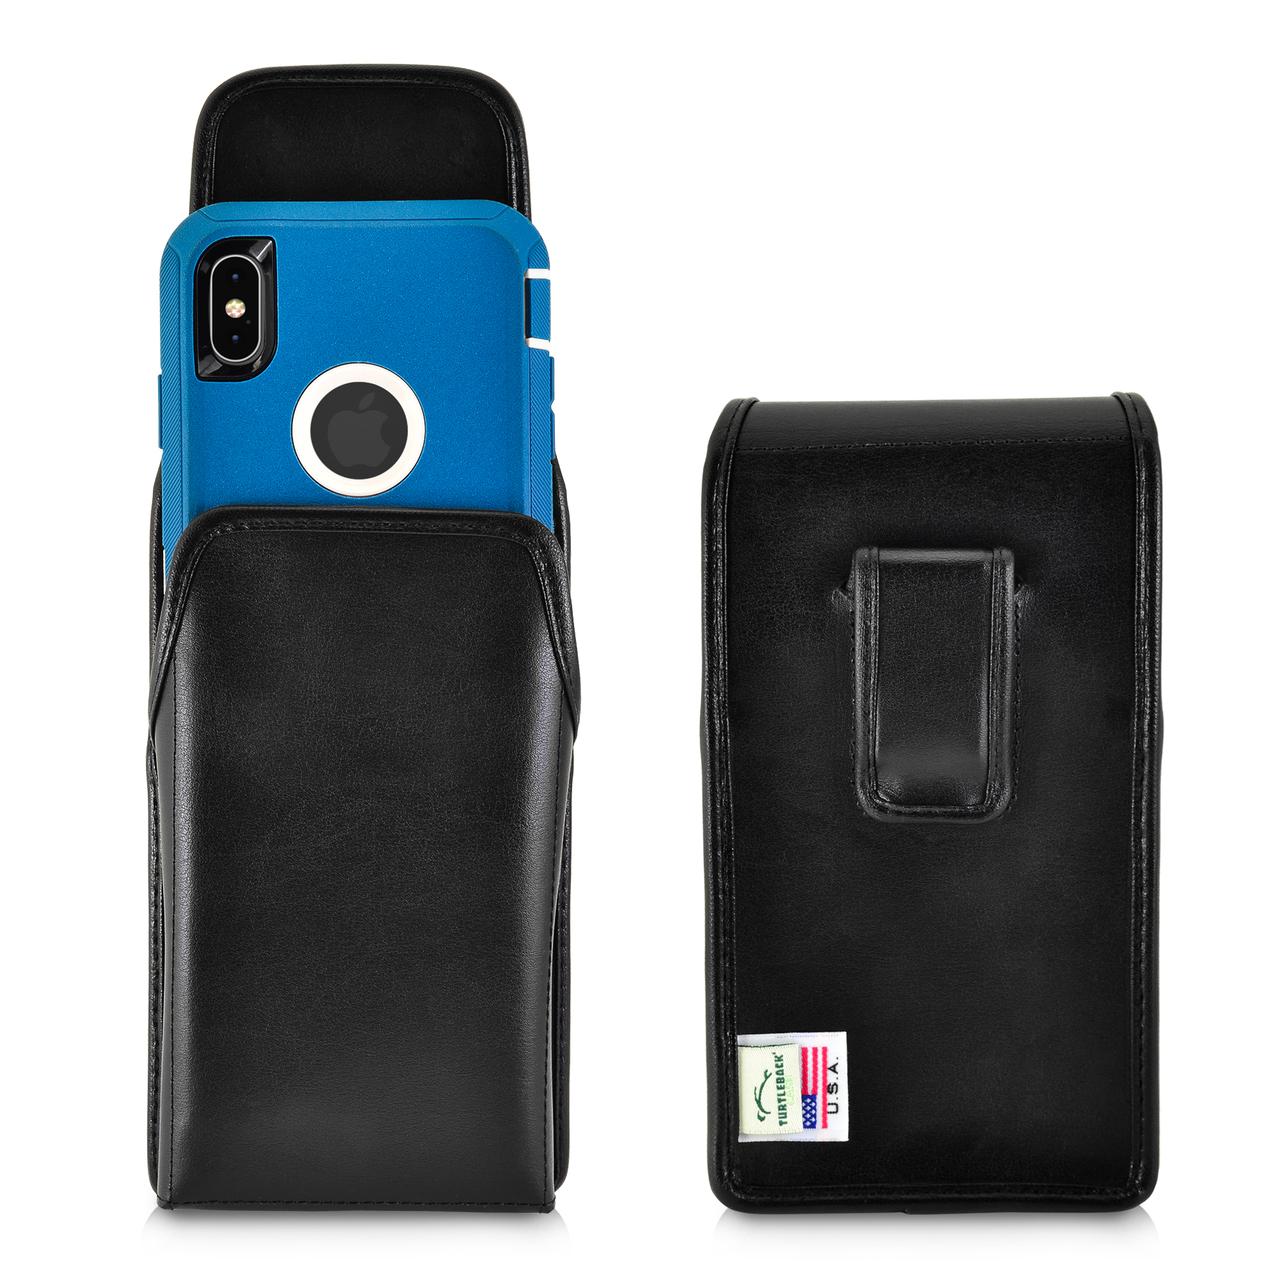 watch 9d174 25910 iPhone XS MAX (2018) Fits with OTTERBOX DEFENDER Vertical Belt Case Black  Leather Pouch Executive Belt Clip